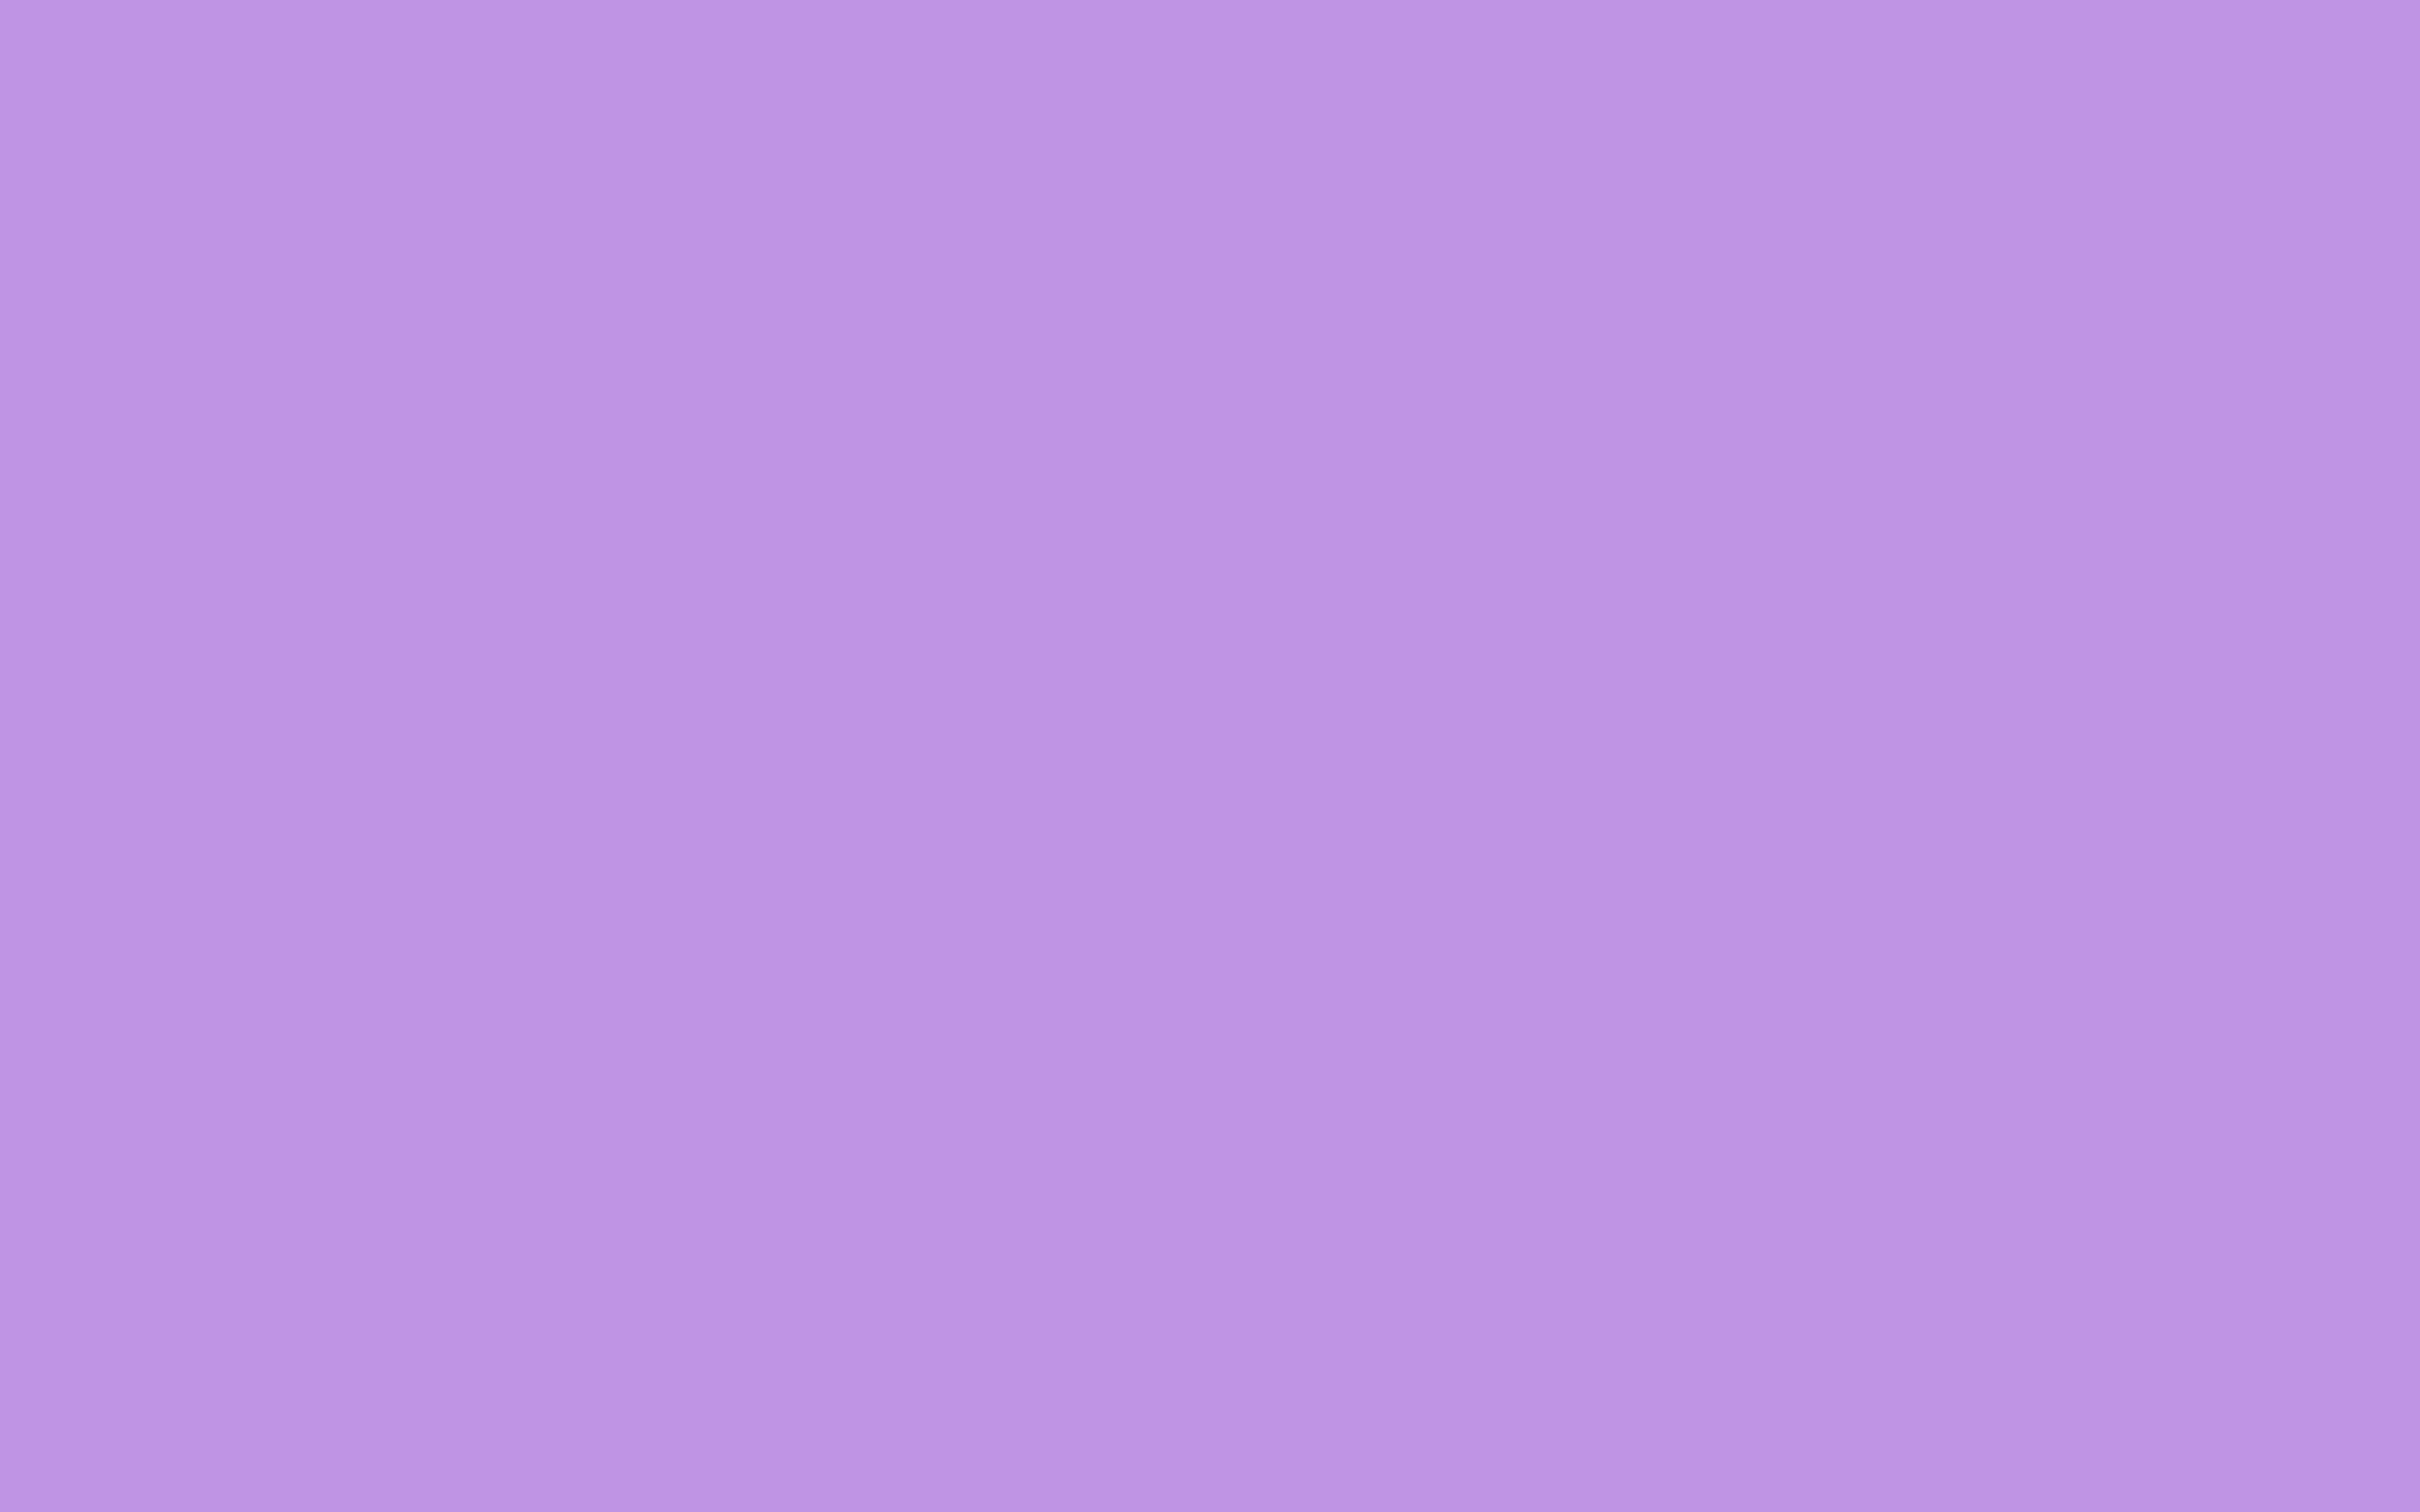 2560x1600 background color solid lavender bright images